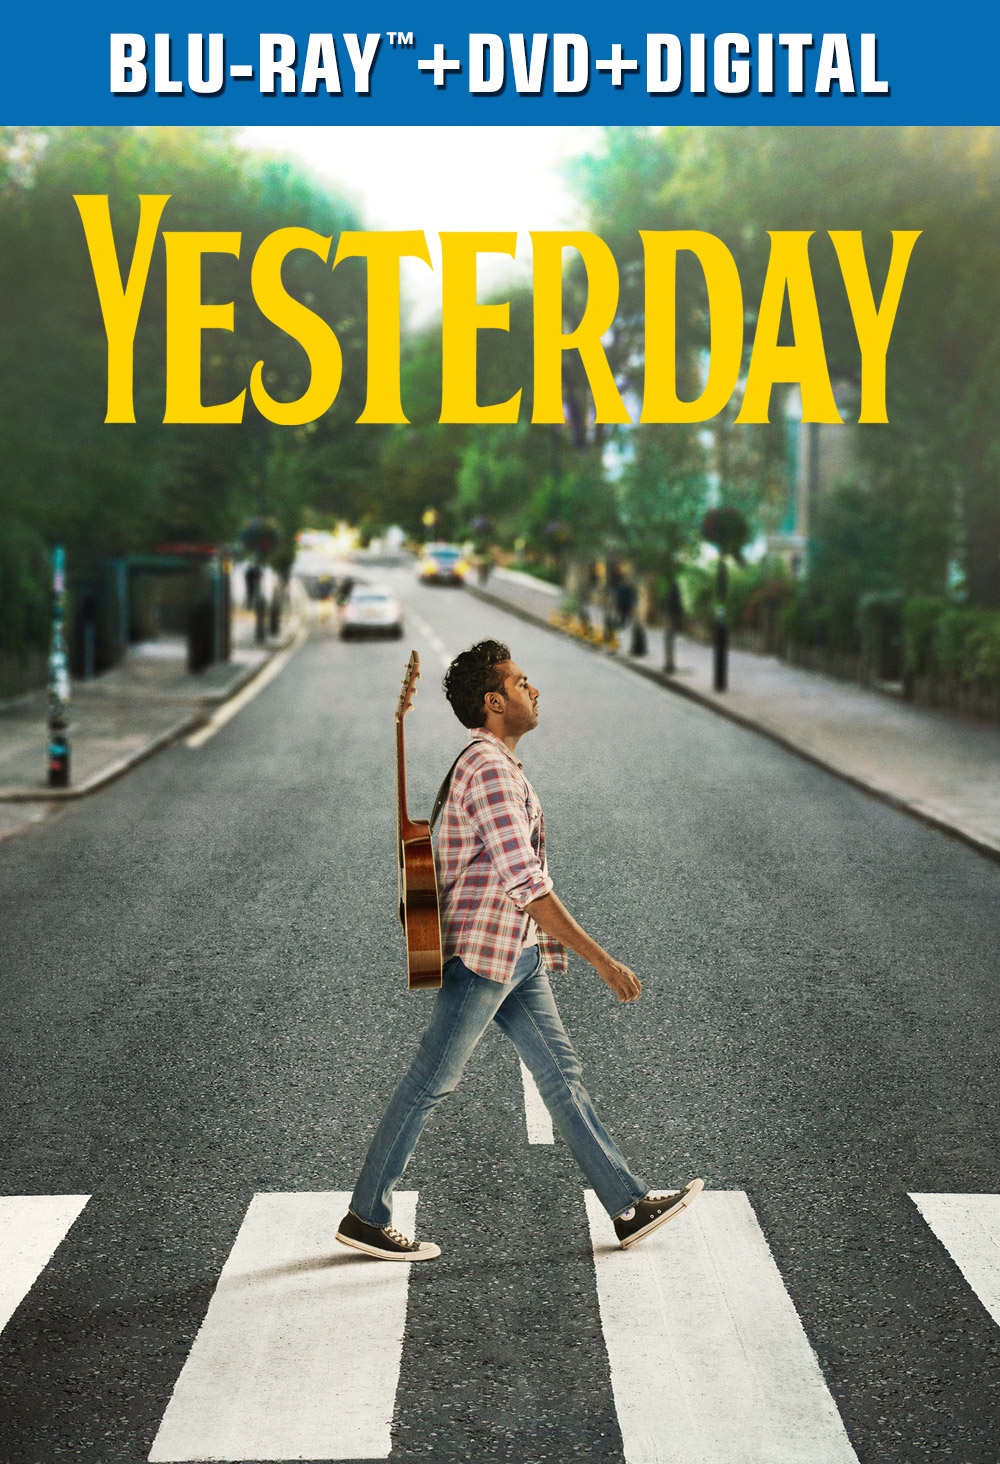 YESTERDAY (W / DVD) / (2PK)-YESTERDAY (W  /  DVD)  /  (2PK)